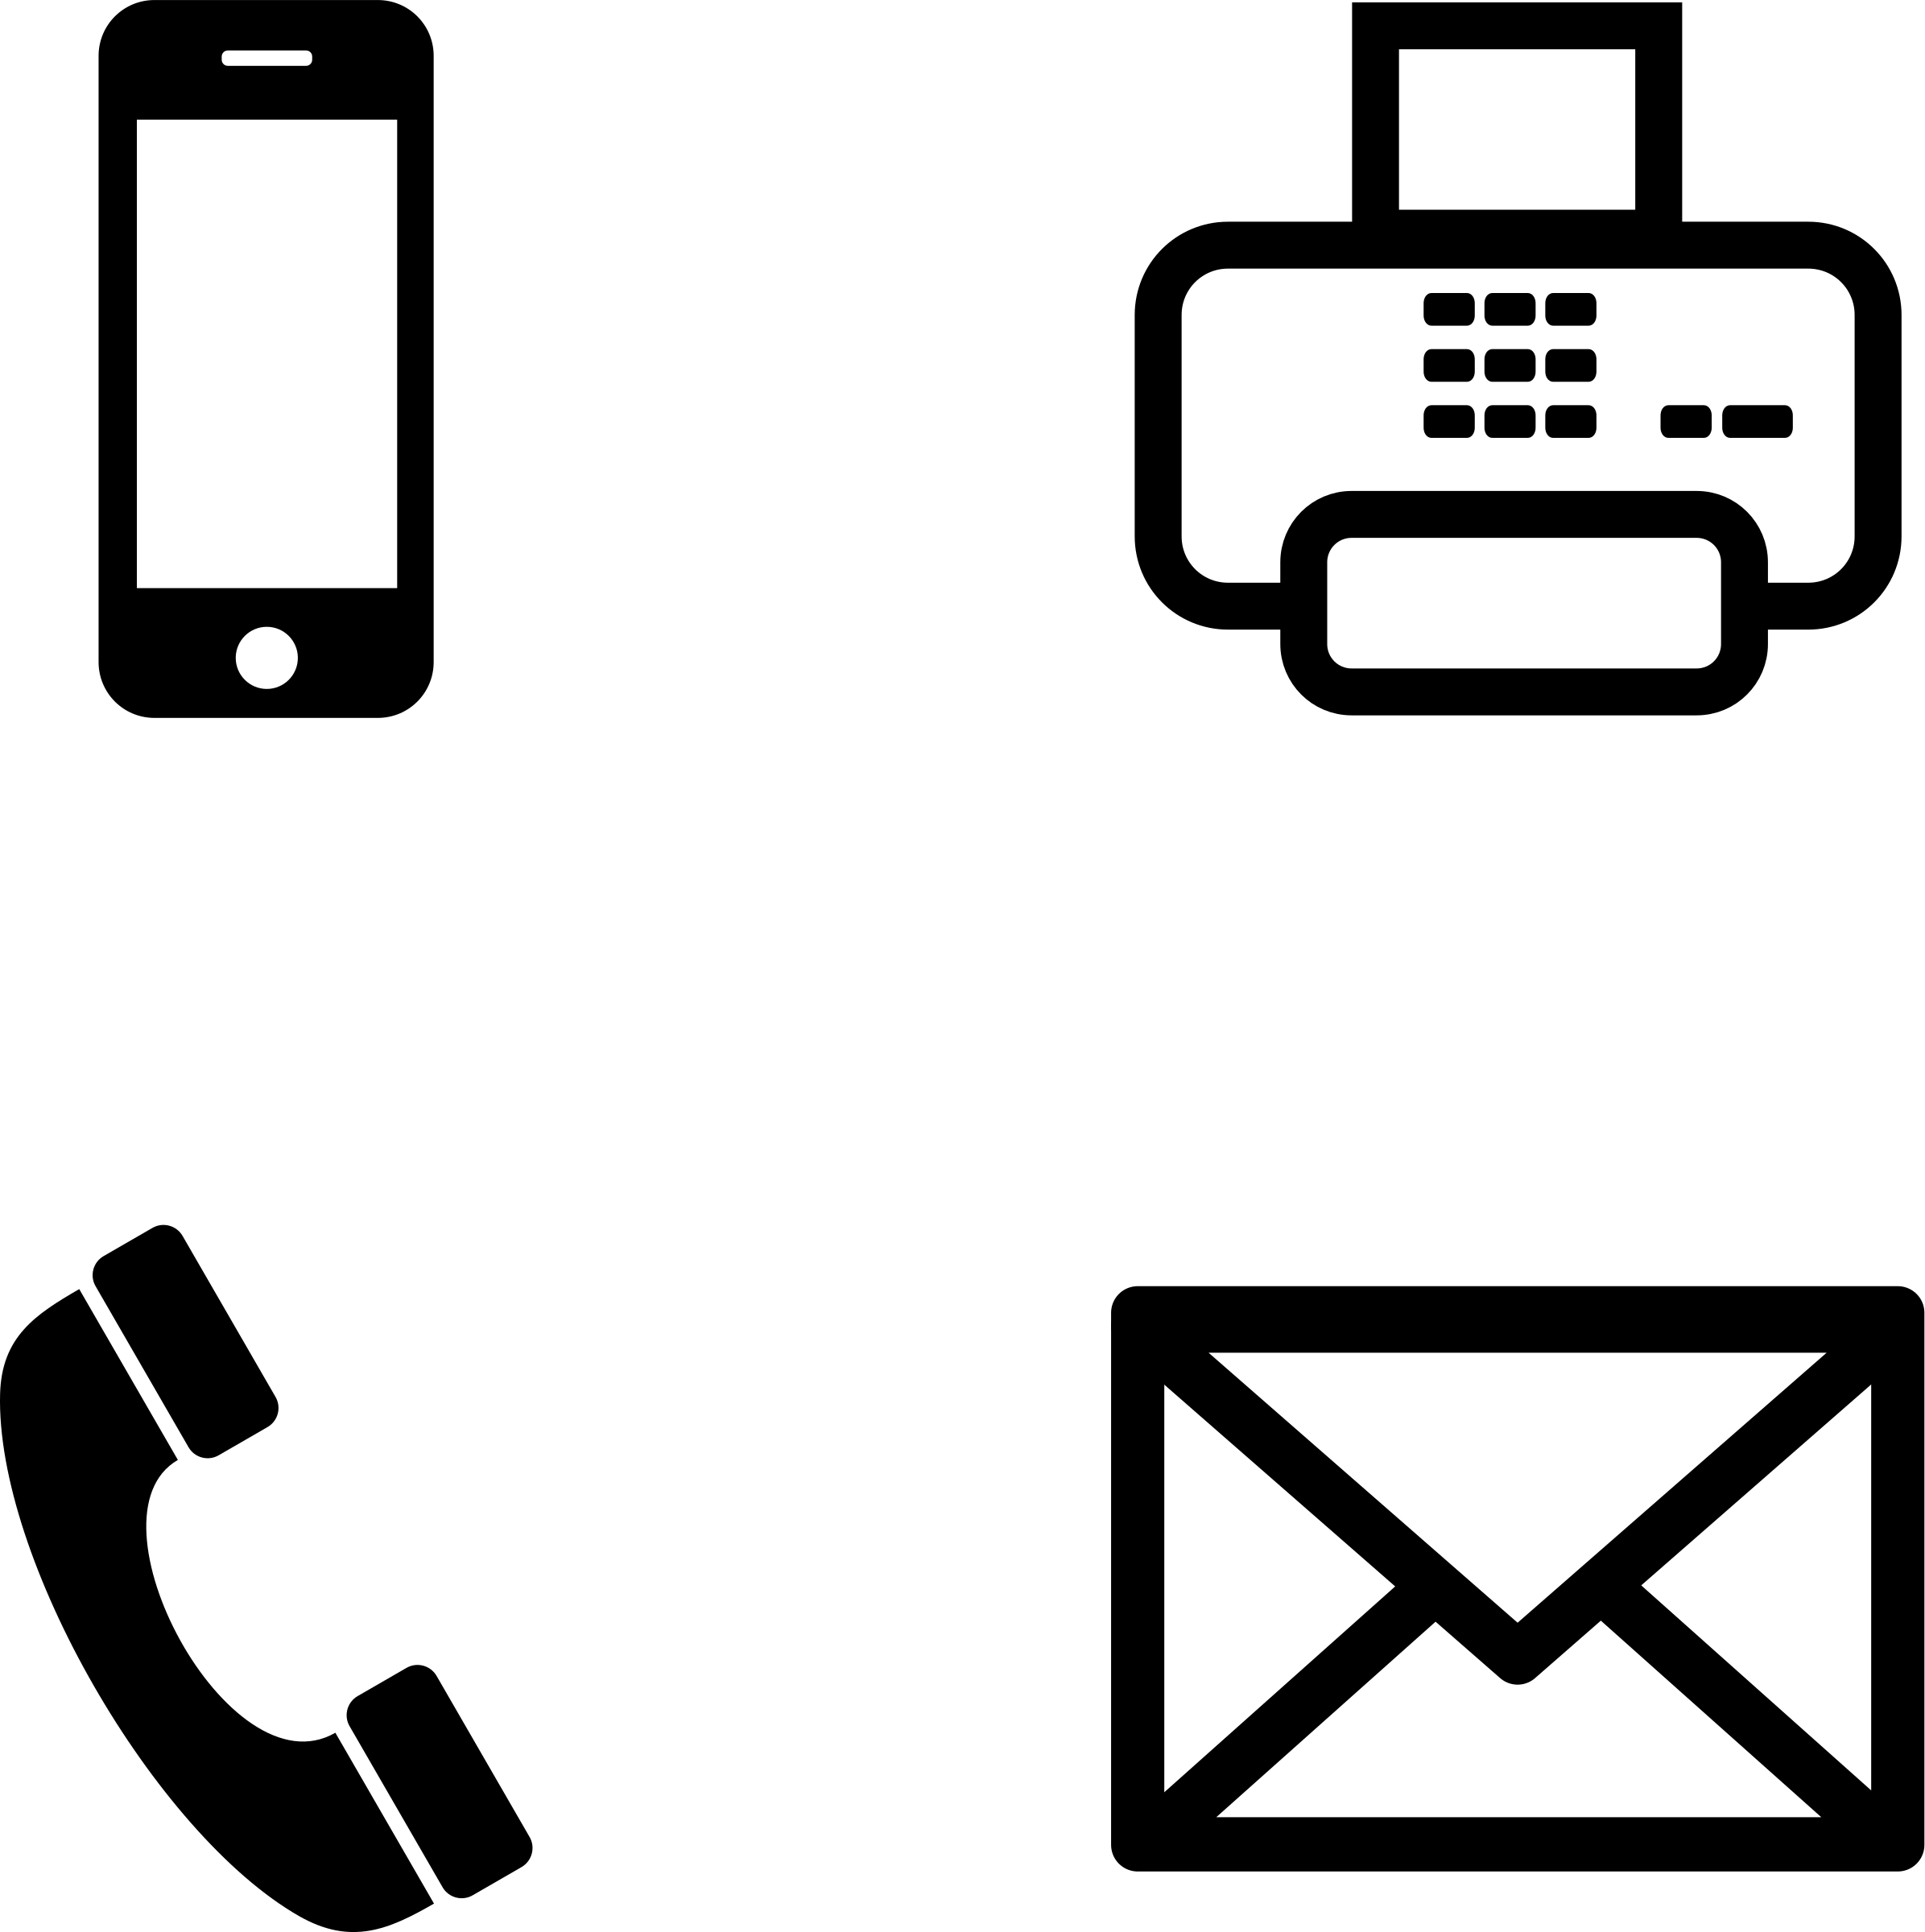 Free Phone Icon Cliparts, Download Free Clip Art, Free Clip.